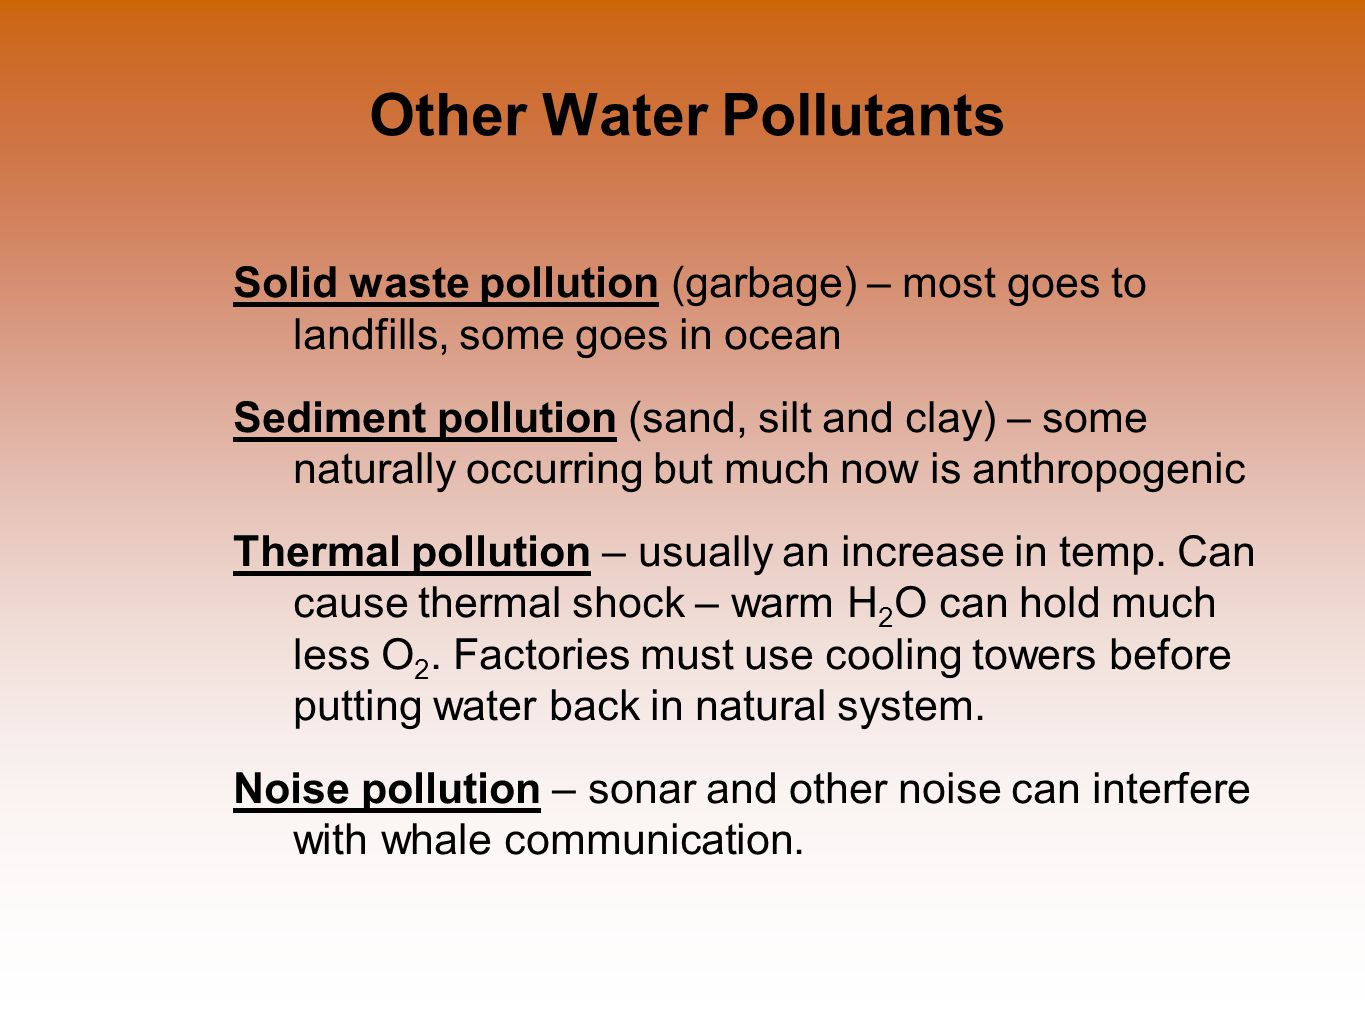 Other Water Pollutants Solid waste pollution (garbage) – most goes to landfills, some goes in ocean Sediment pollution (sand, silt and clay) – some naturally occurring but much now is anthropogenic Thermal pollution – usually an increase in temp.